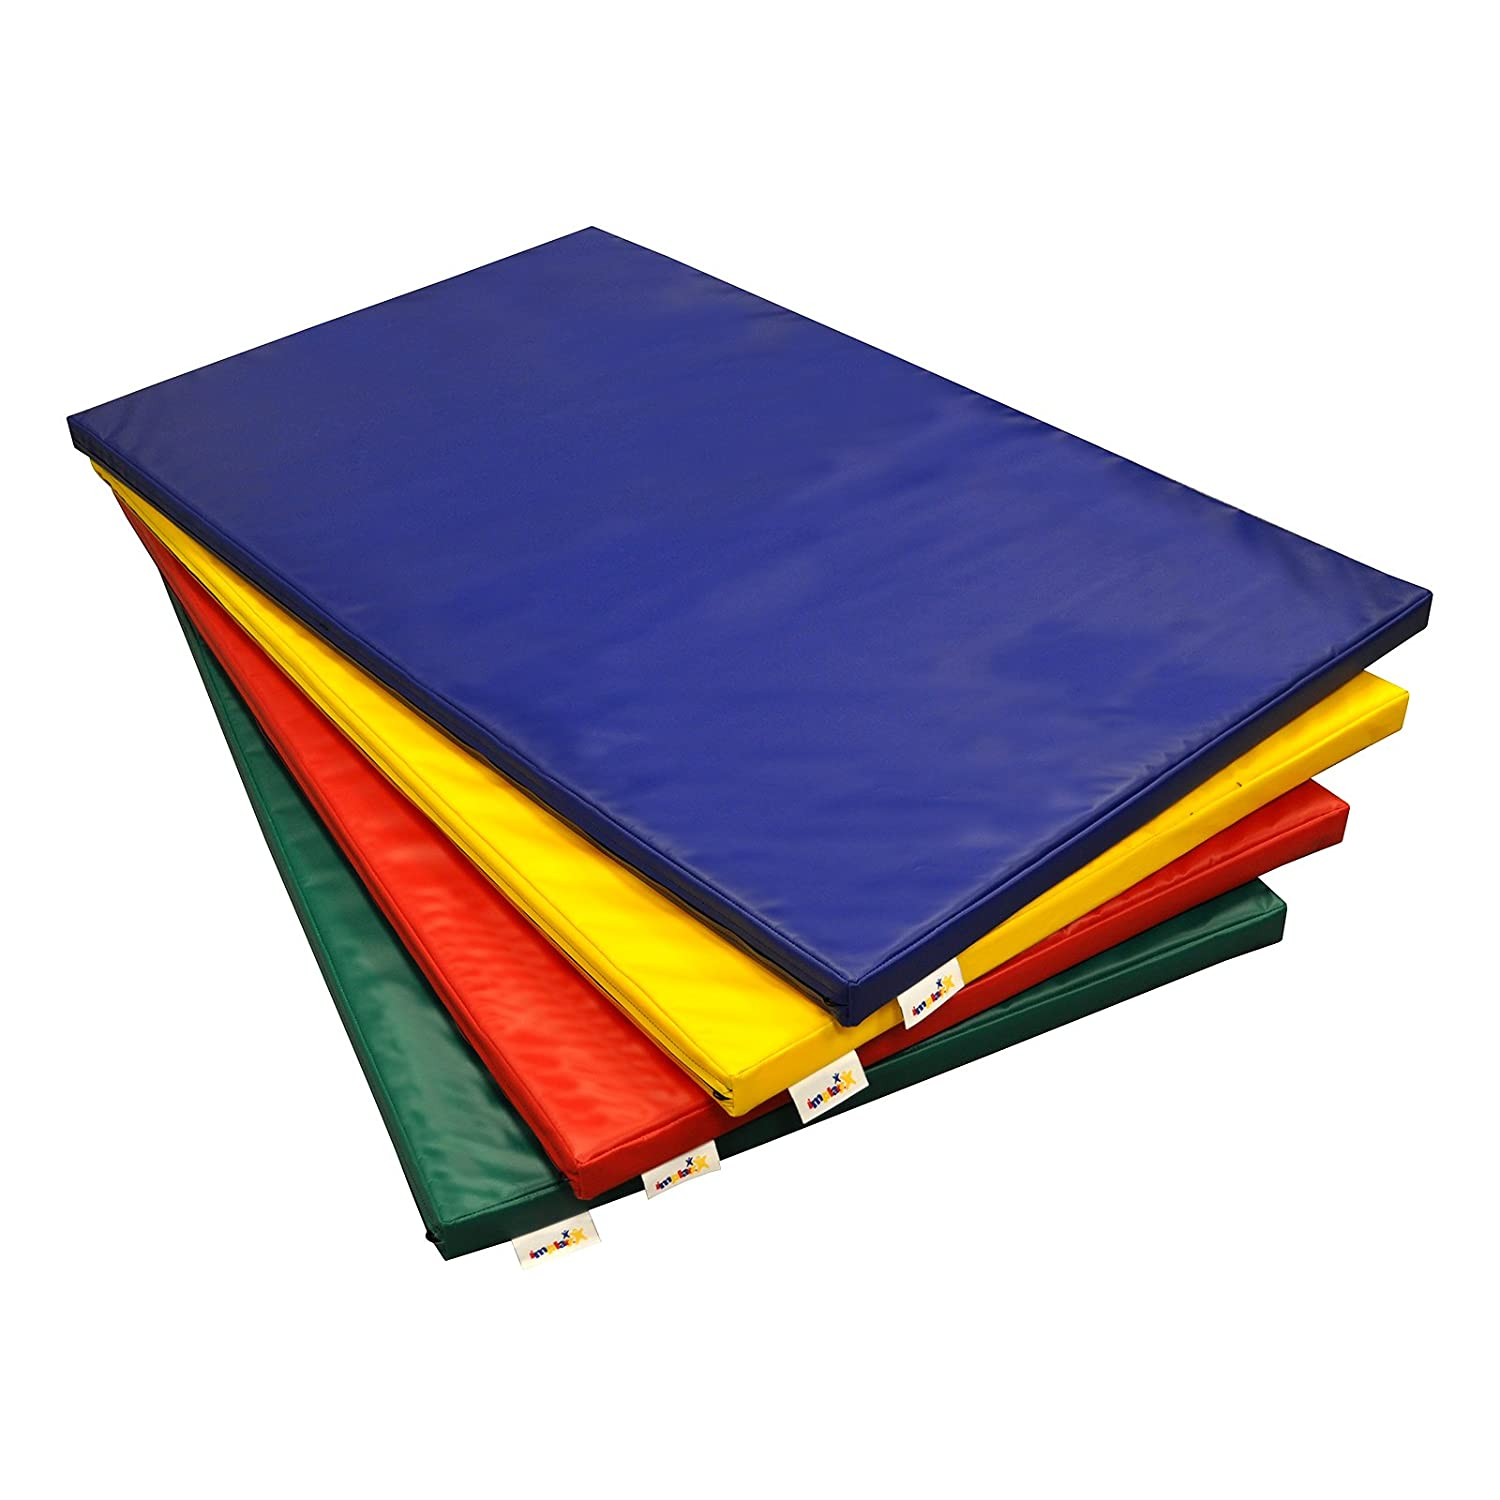 Implay Soft Play Gym Mat Crash Mat Exercise Mat 610gsm PVC